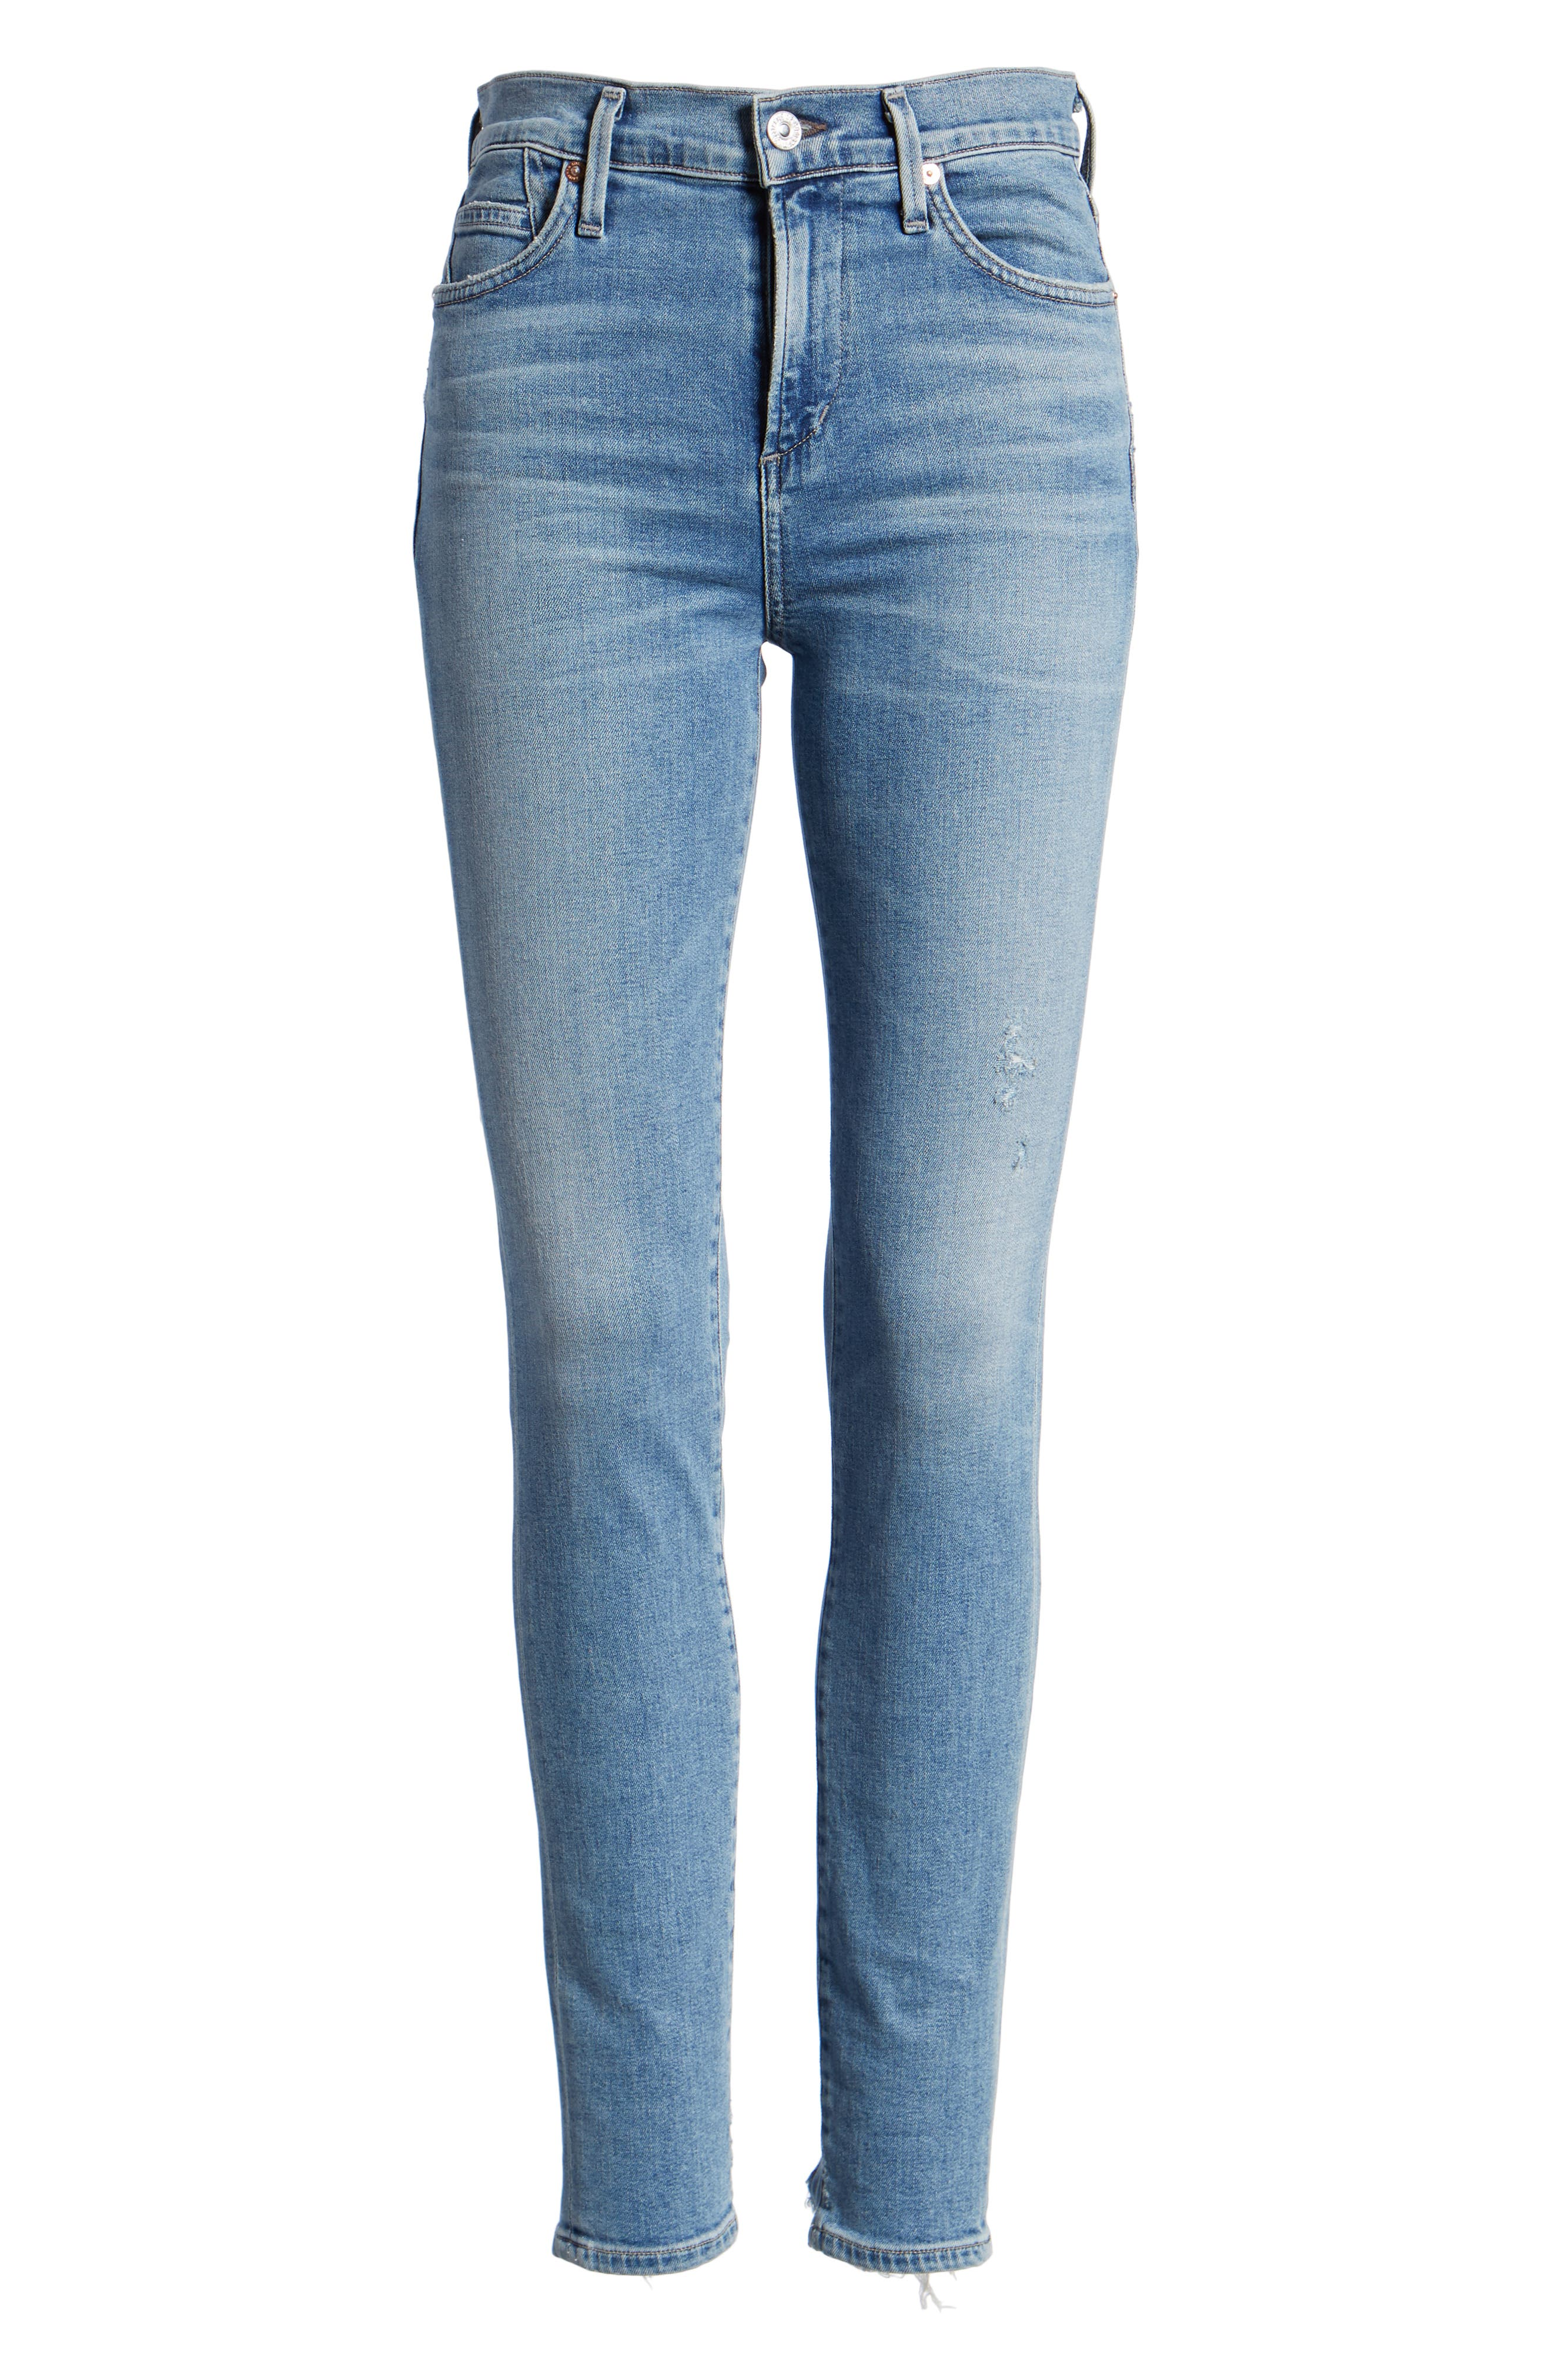 CITIZENS OF HUMANITY, Rocket High Waist Skinny Jeans, Alternate thumbnail 7, color, SMALL TALK